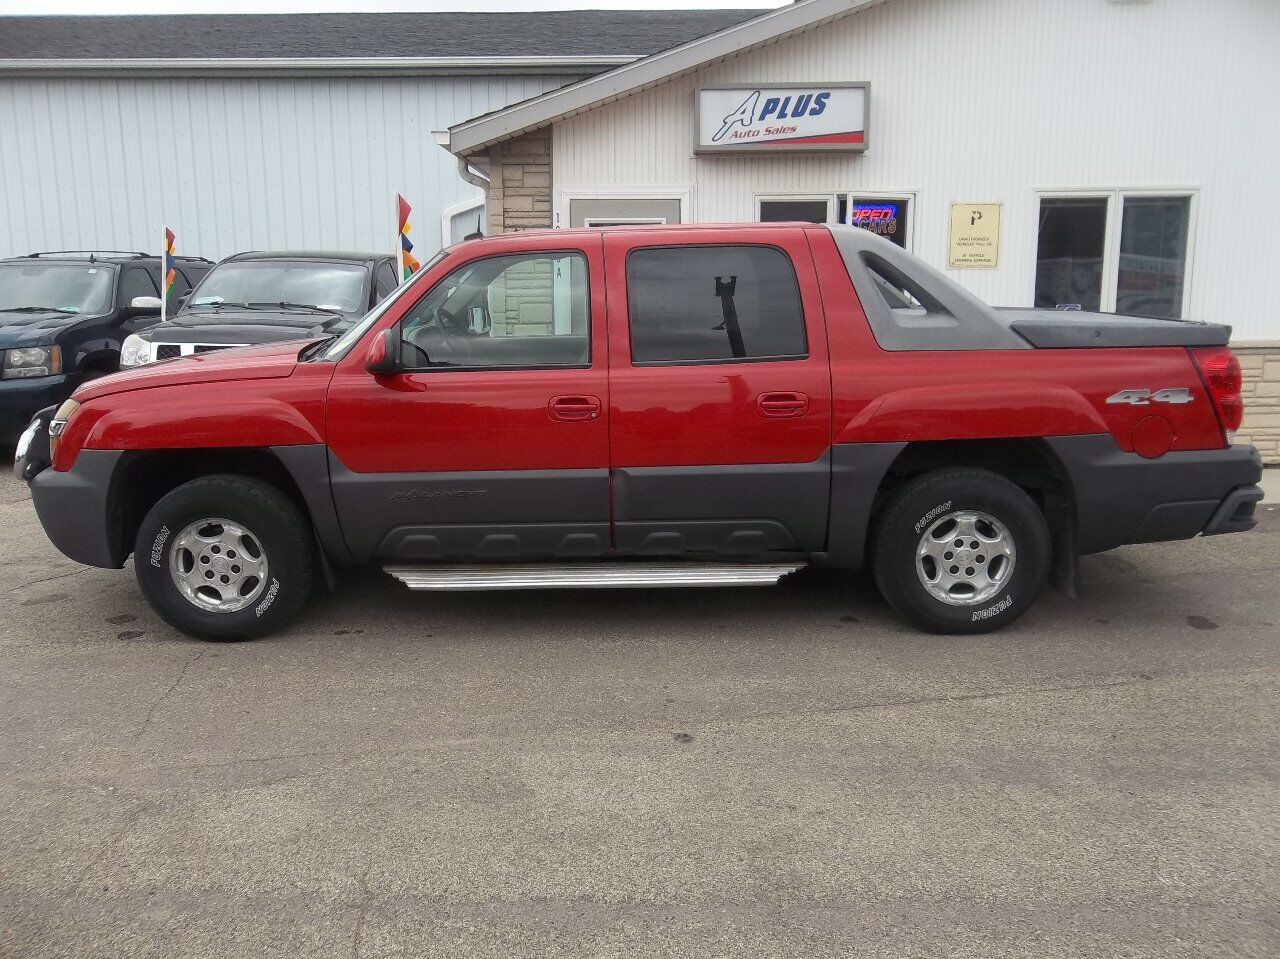 2003 Chevrolet Avalanche 1500 | Sioux Falls, SD, Victory Red (Red & Orange), 4 Wheel